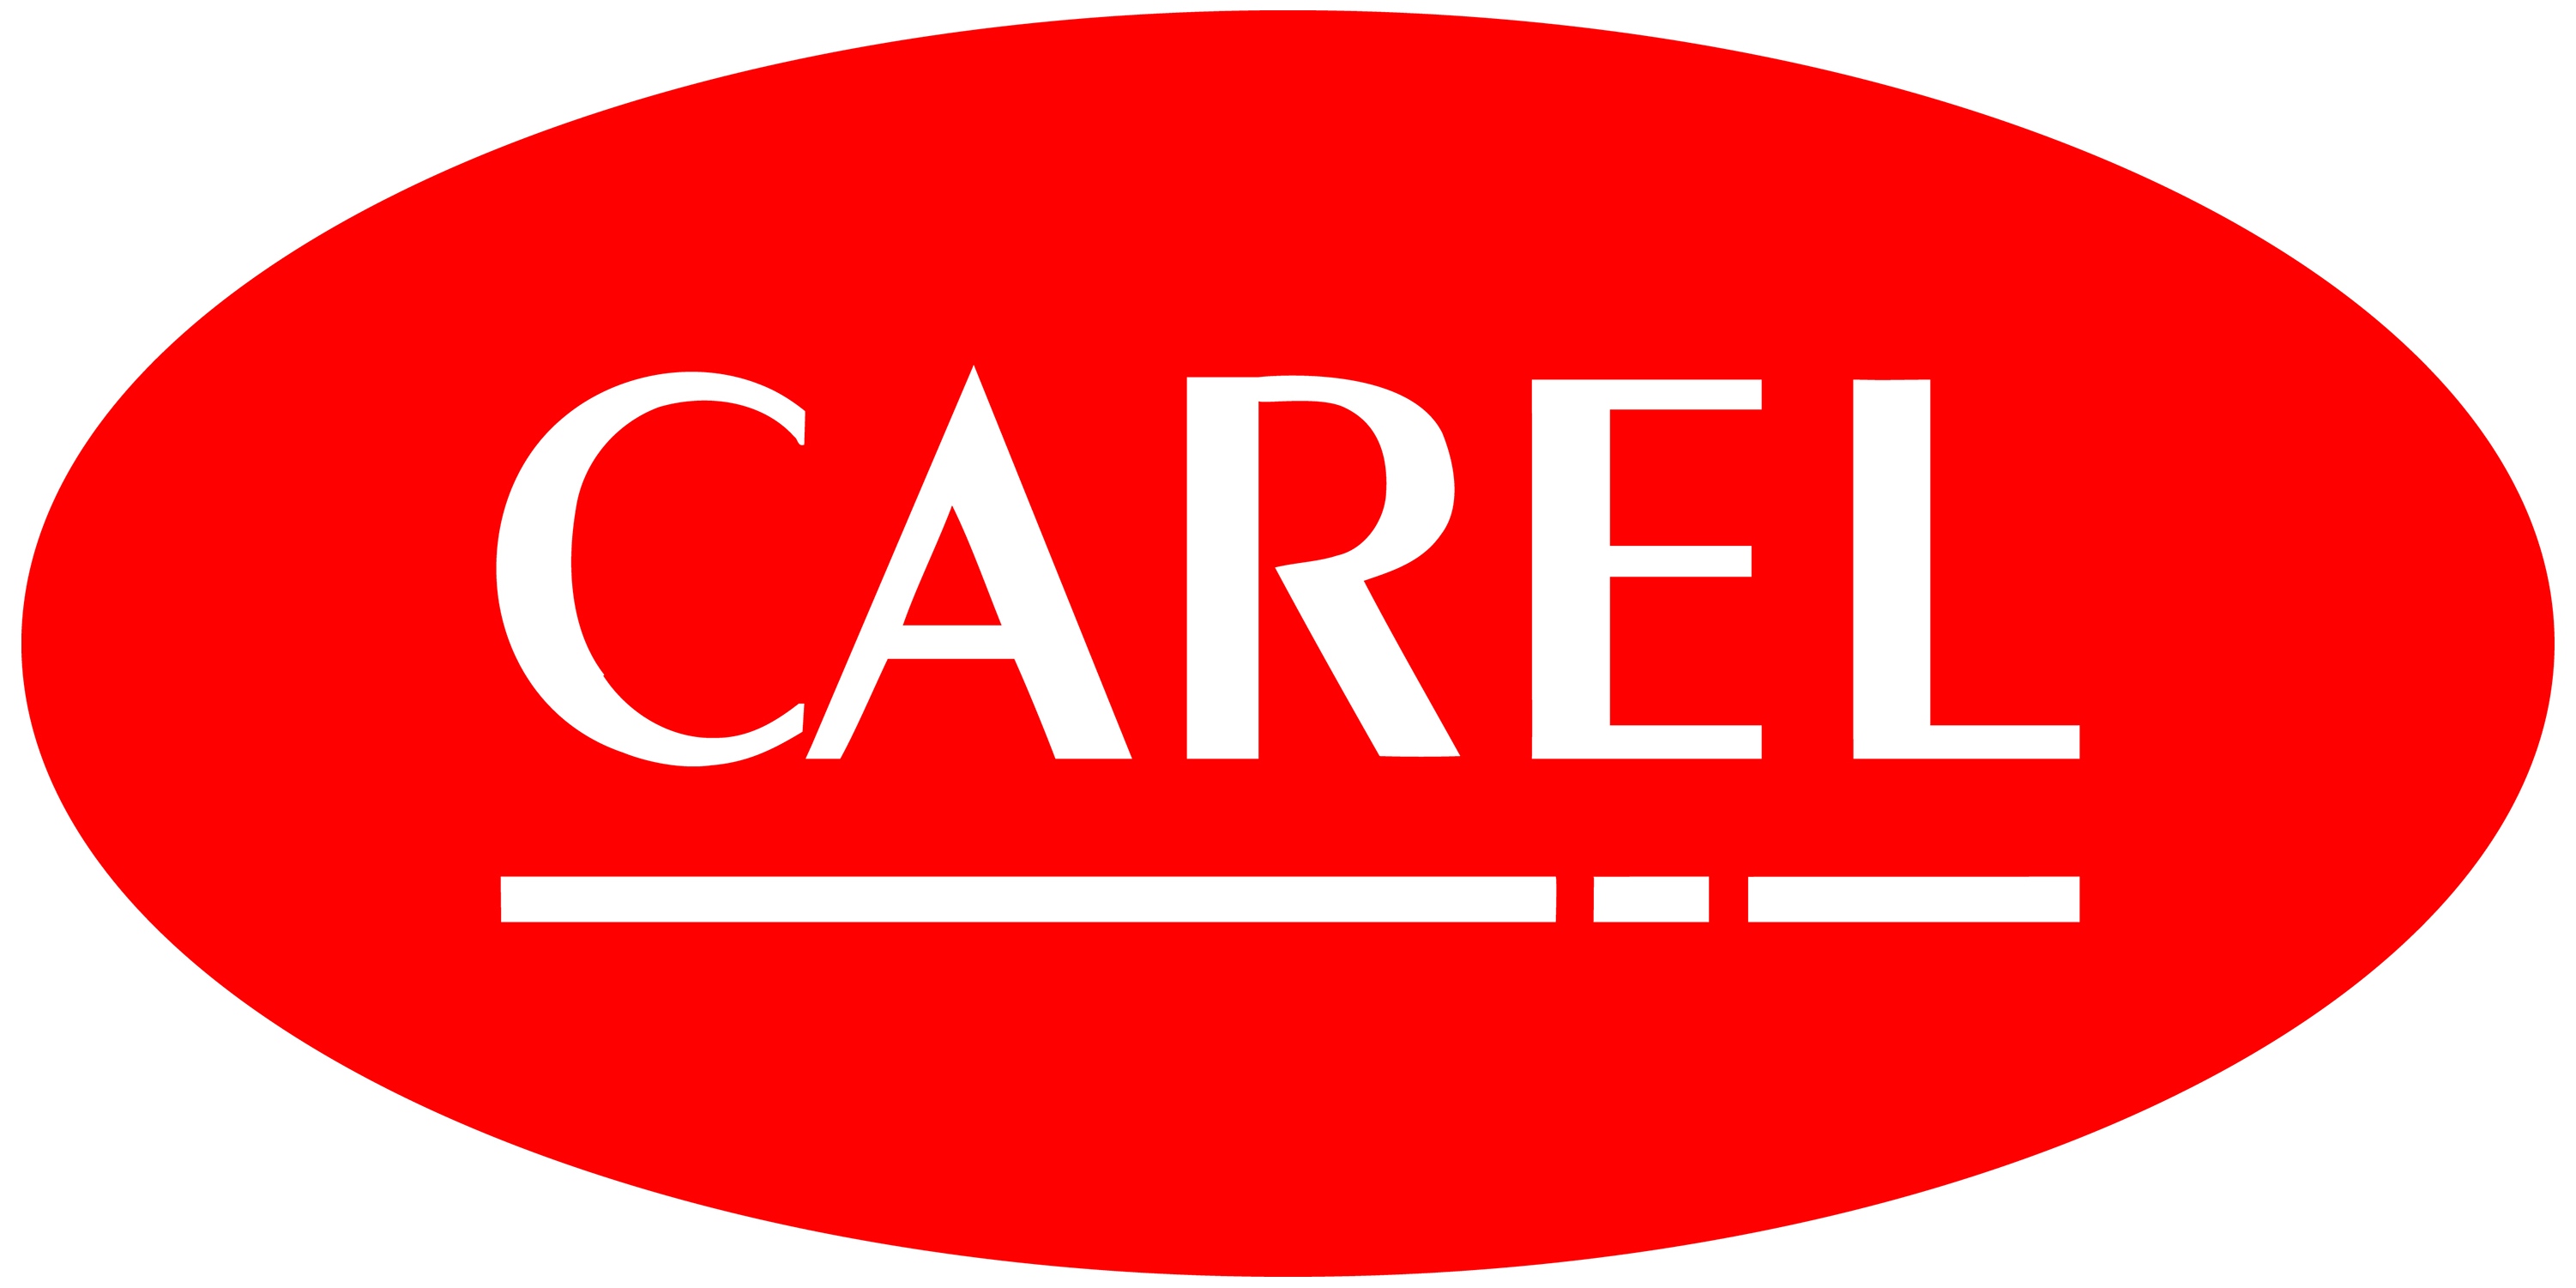 CAREL - Career opportunities